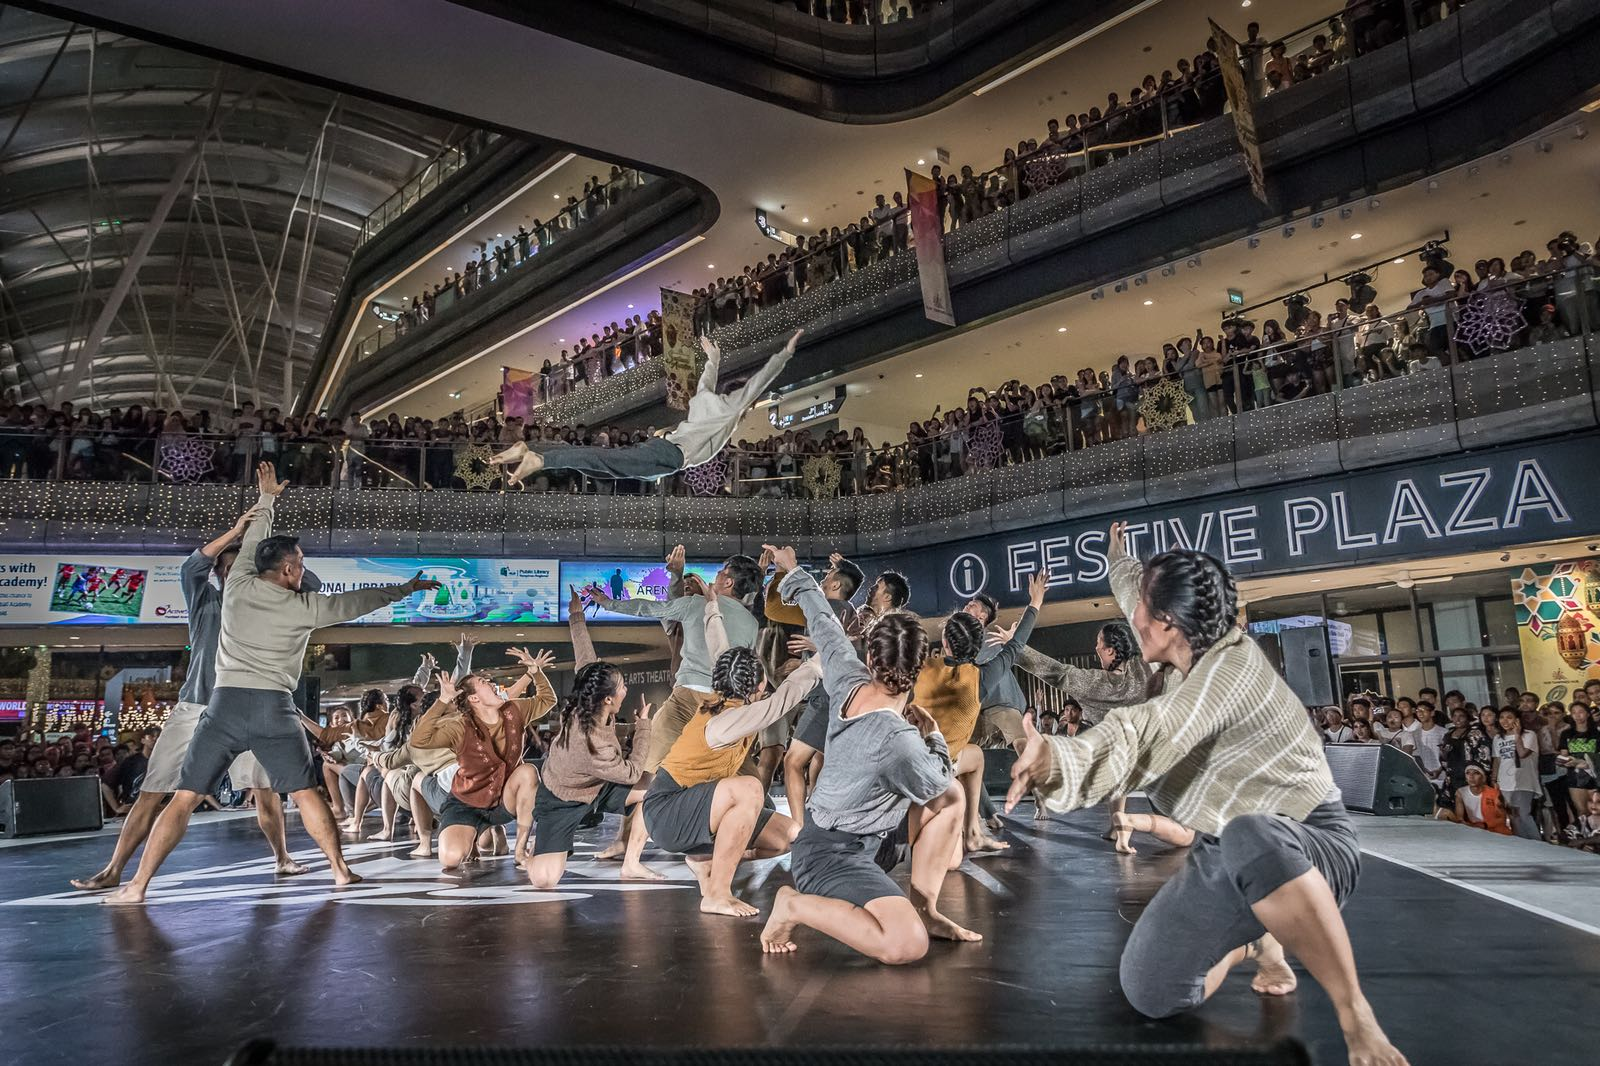 Super 24: Why You Should Head Down for the Finals of Singapore's Most Unique Urban Dance Competition